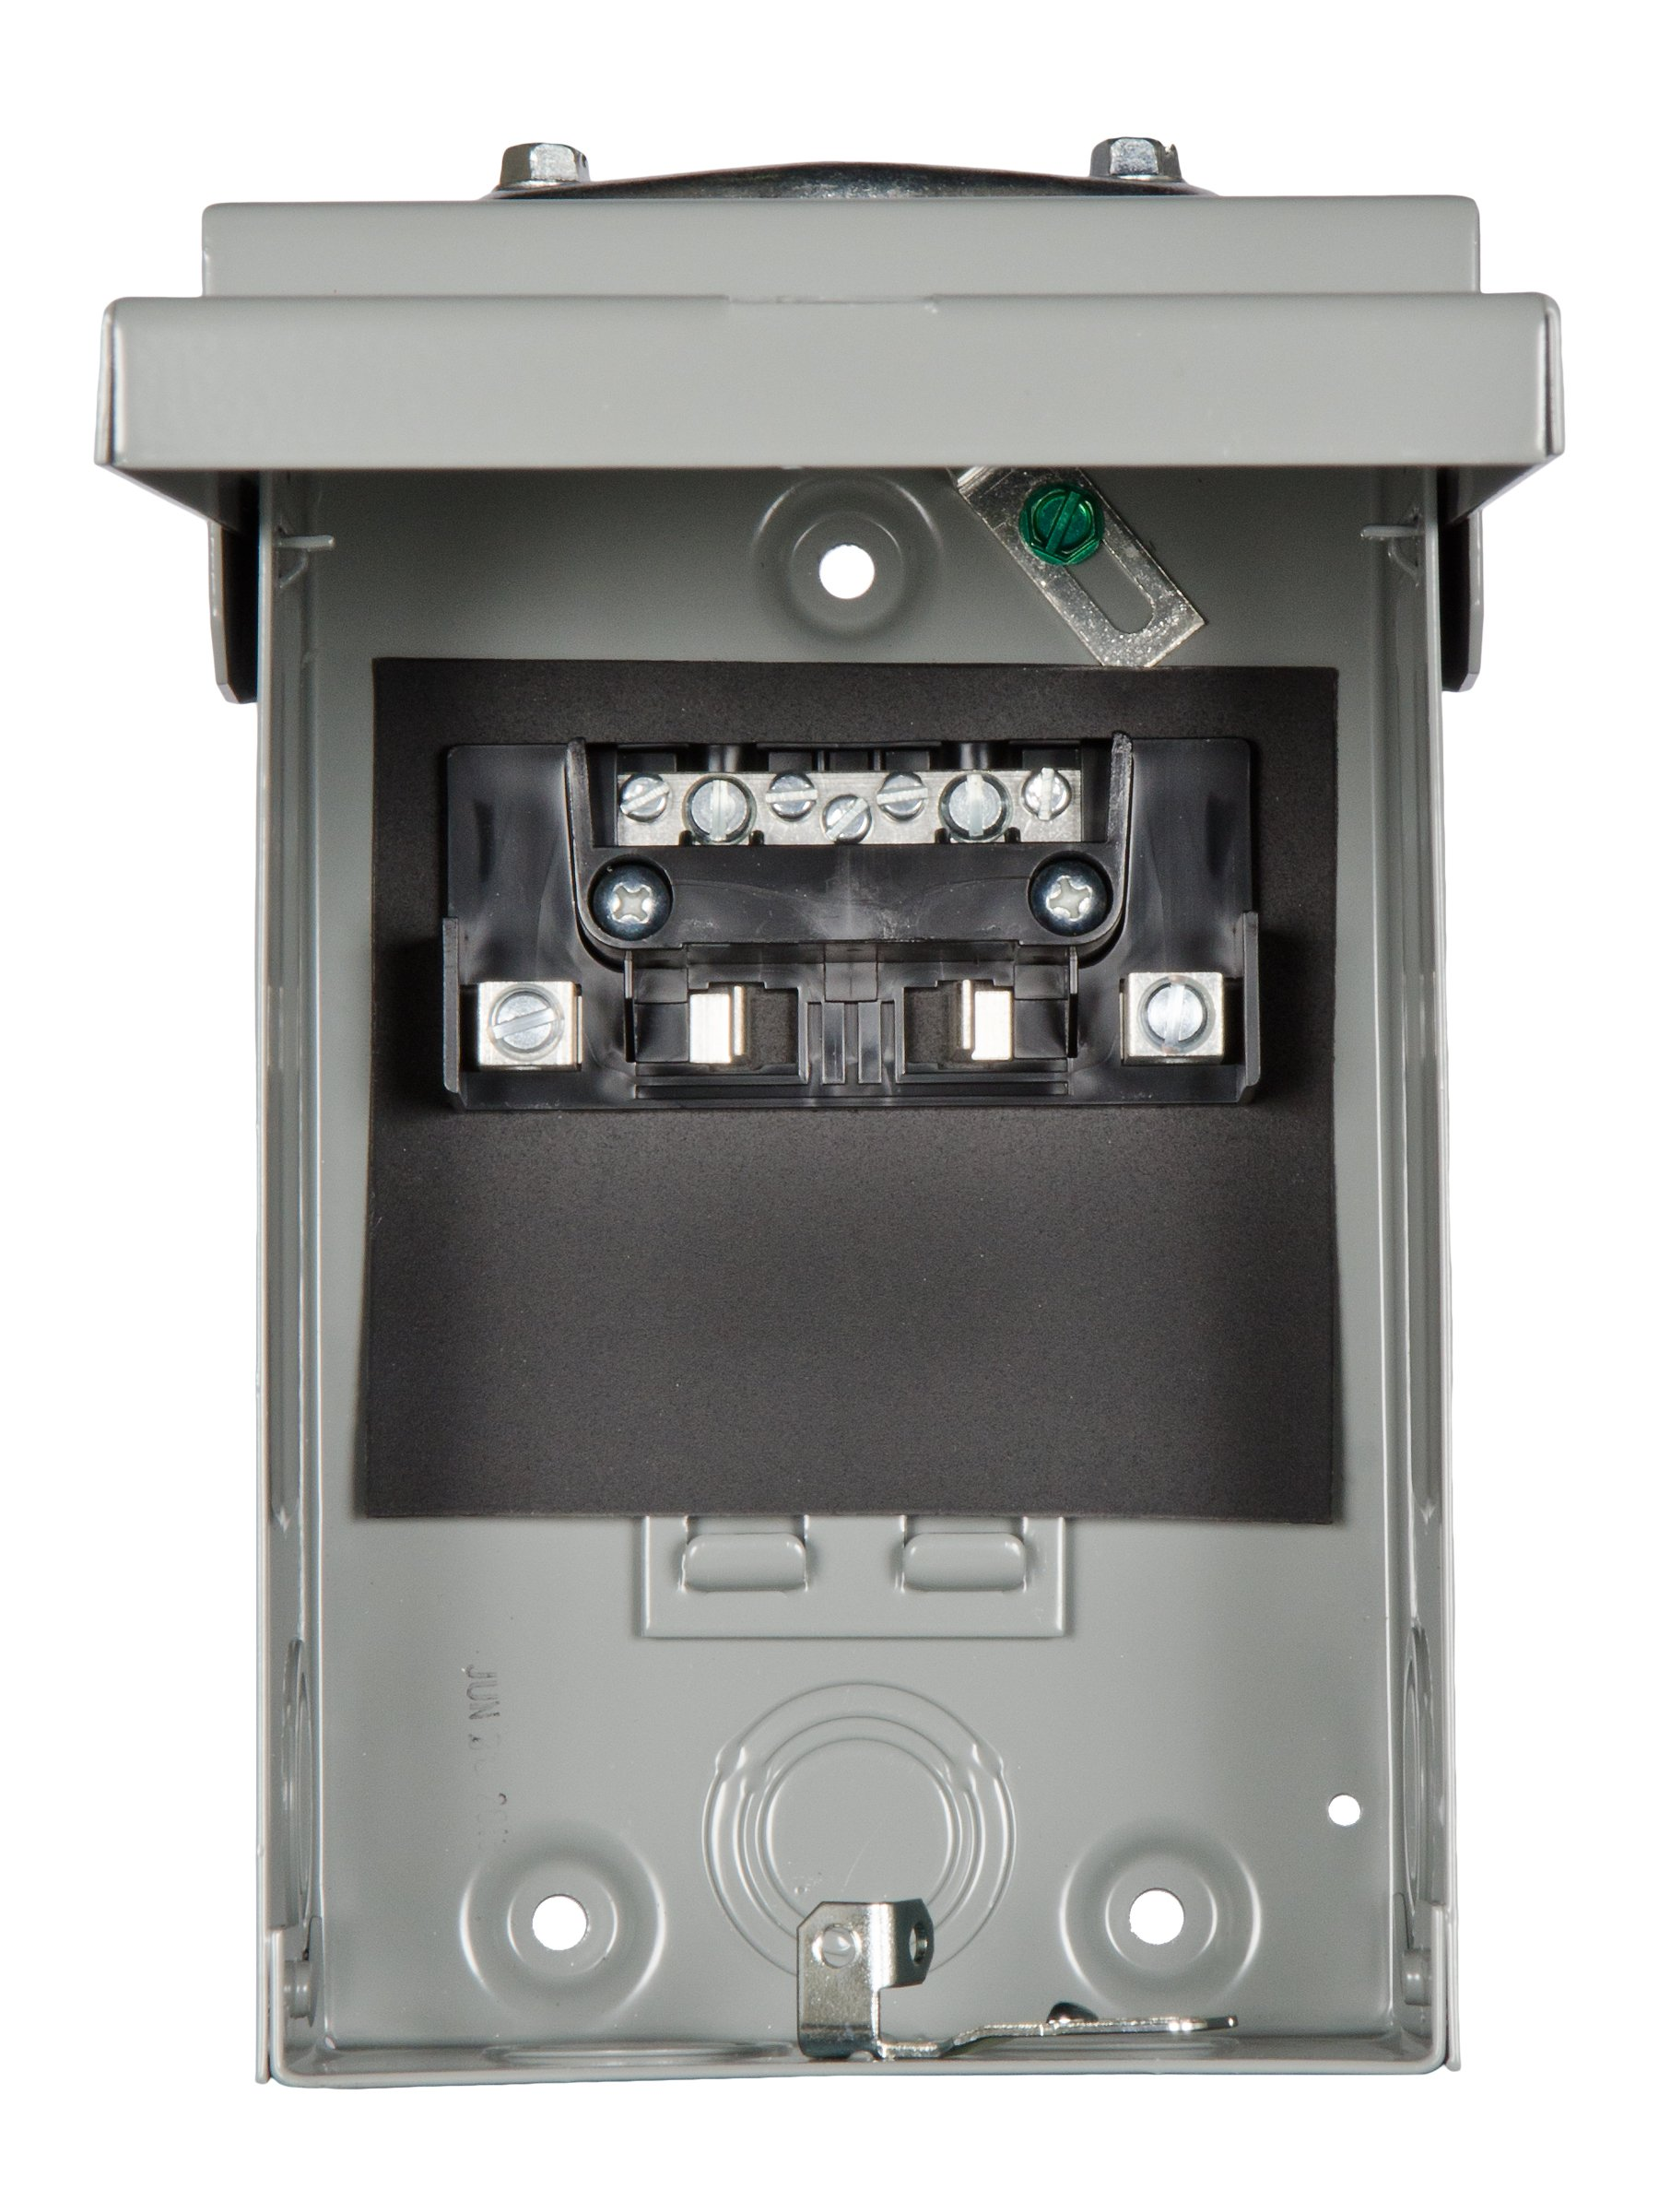 Best Rated In Circuit Breaker Panels Helpful Customer Reviews Your Elctricity Home Oil Breakers Murray Lw002gru 60a Enclosure Product Image